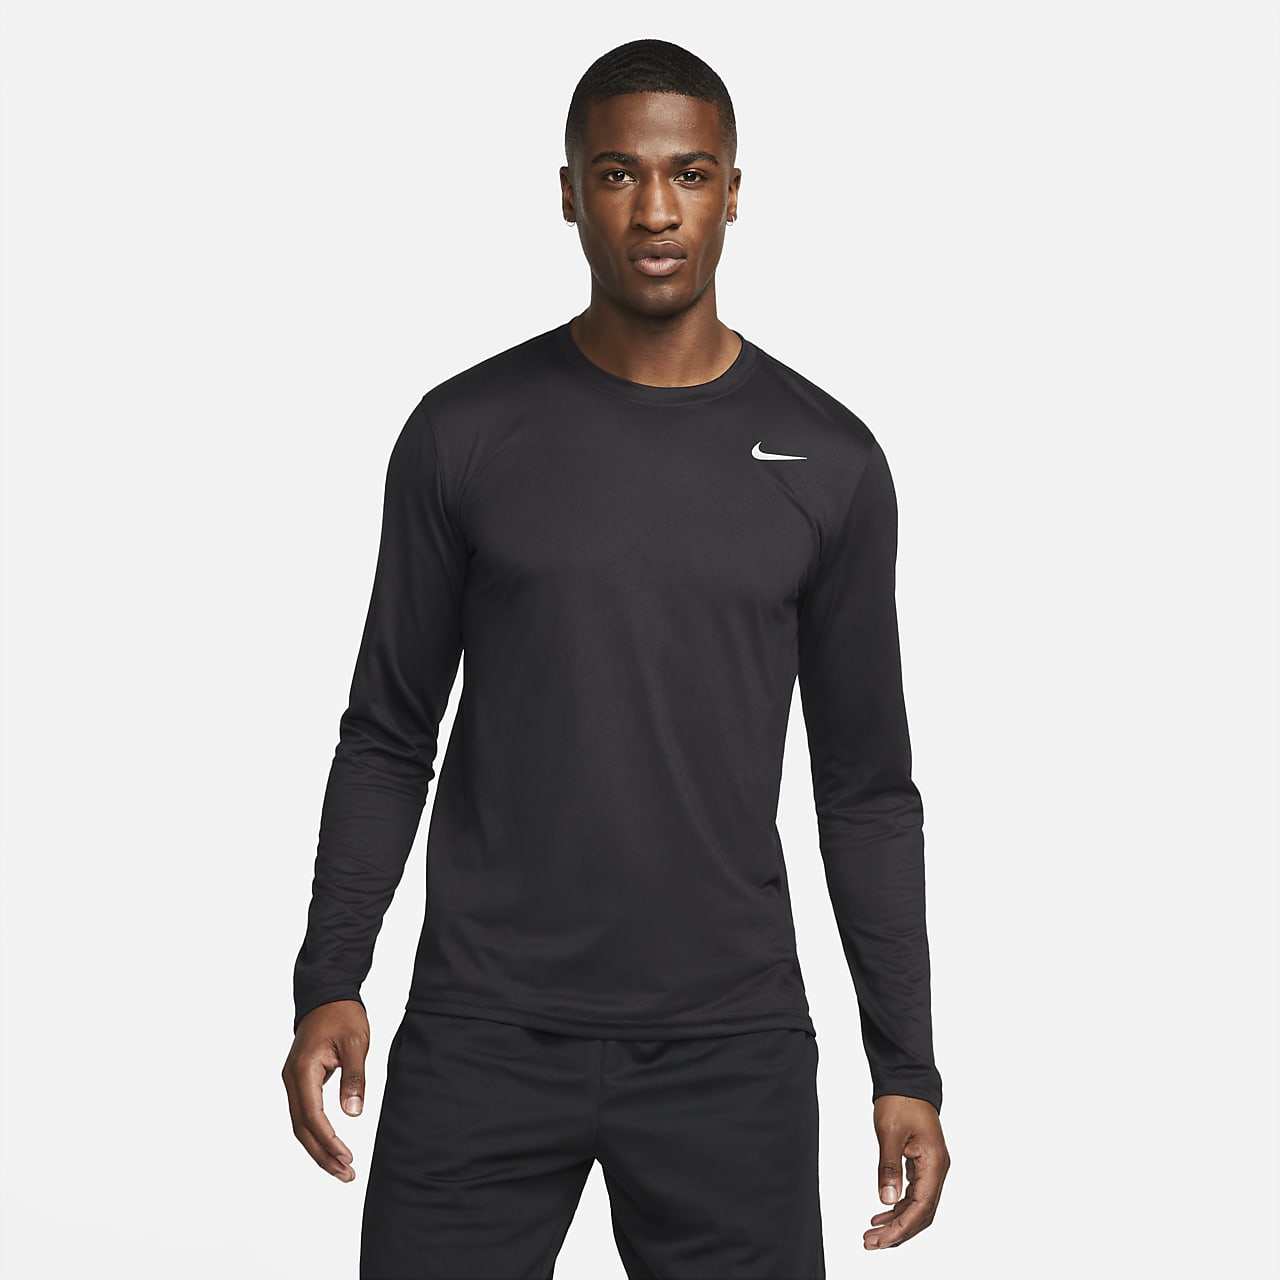 Activewear Tops Clothing, Shoes & Accessories Nike Pro Short Sleeve Dri Fit Stretch Fabric Nike Fit Exercise Gym Shirt